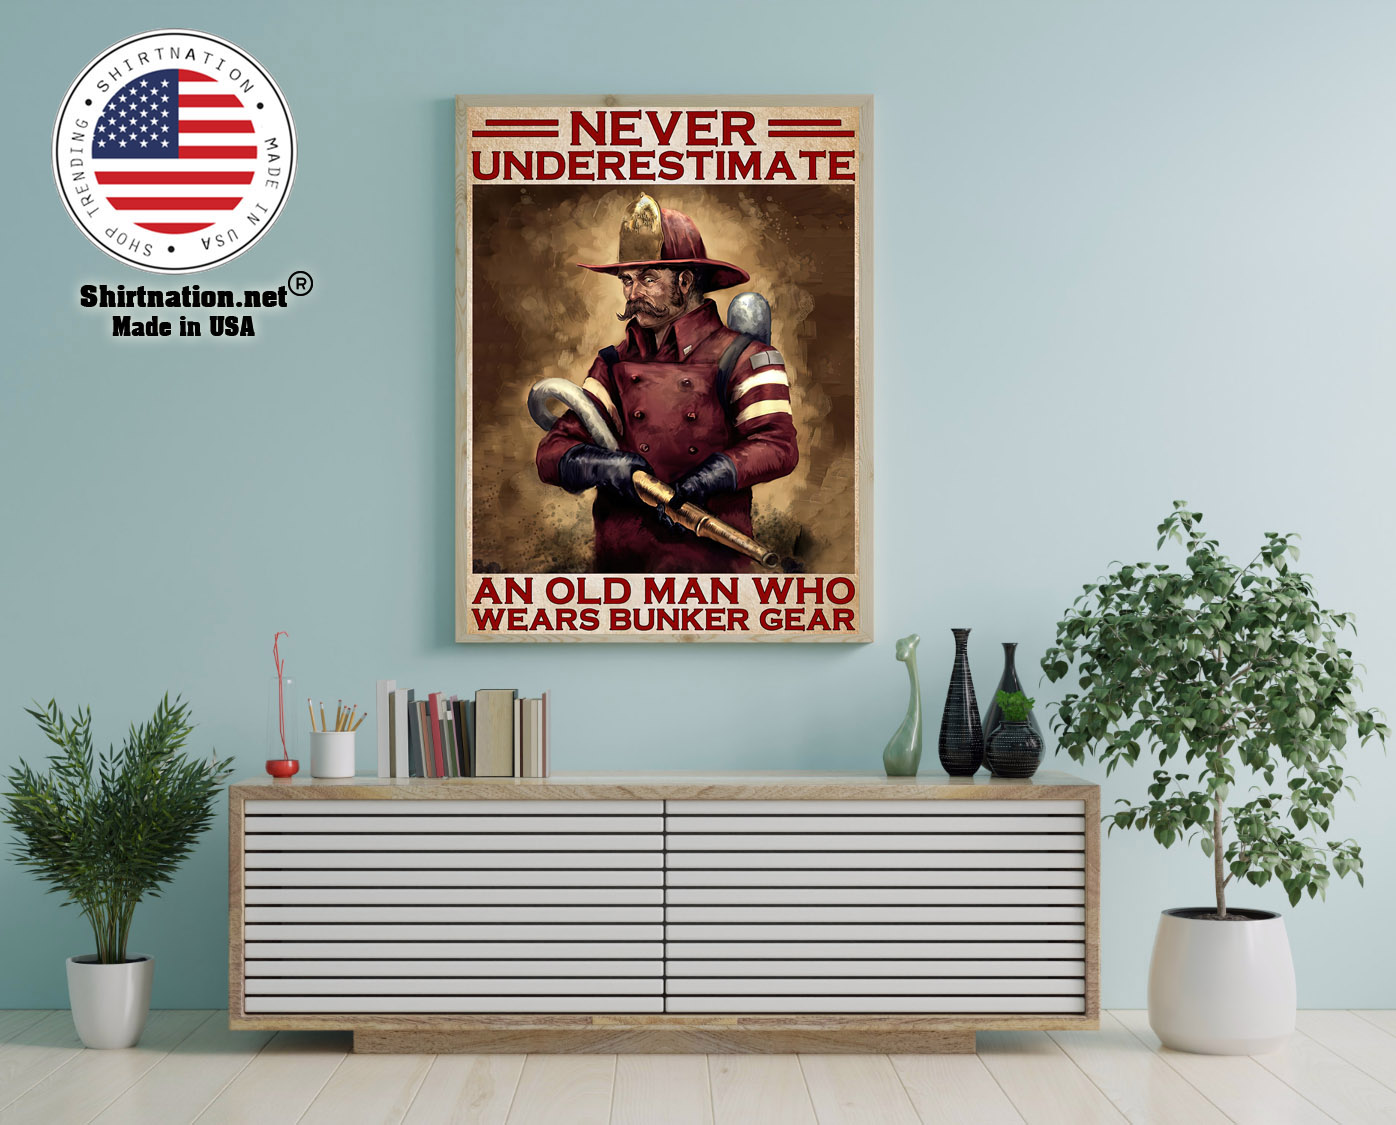 Never underestimate an old man who wears bunker gear poster 12